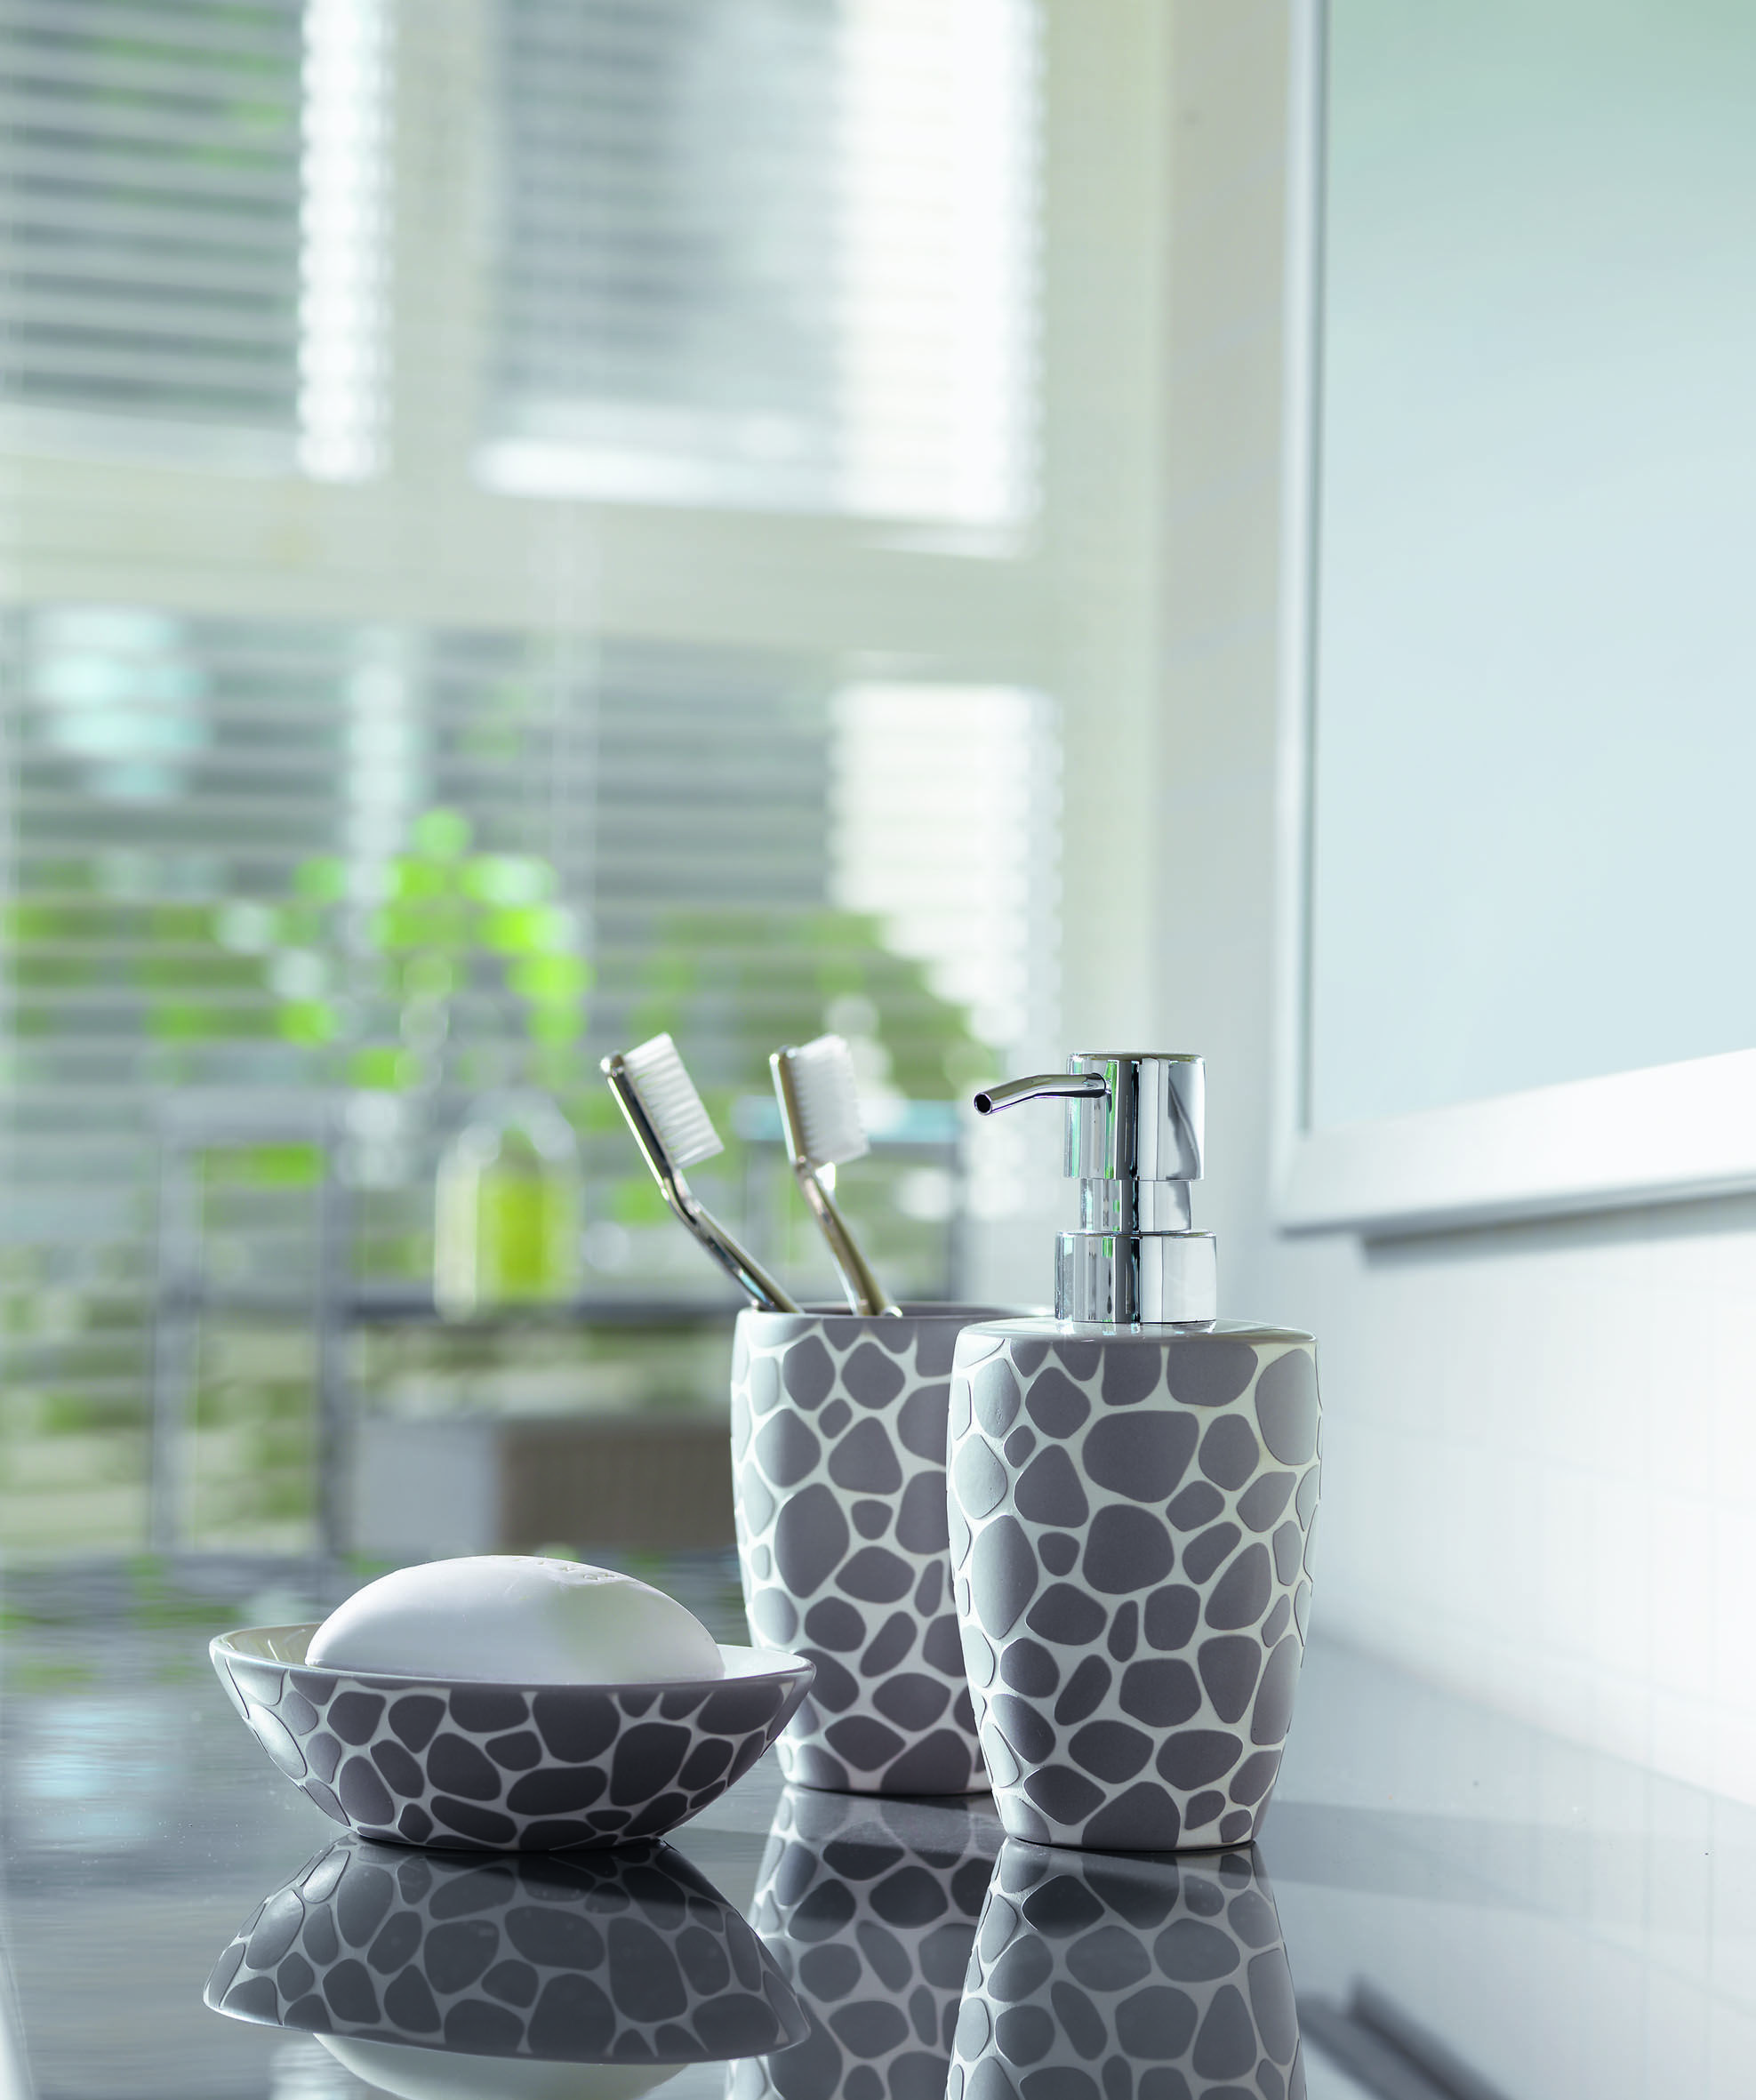 Spirella Darwin Pebble Grey Bathroom Accessories. #bathroom #grey ...